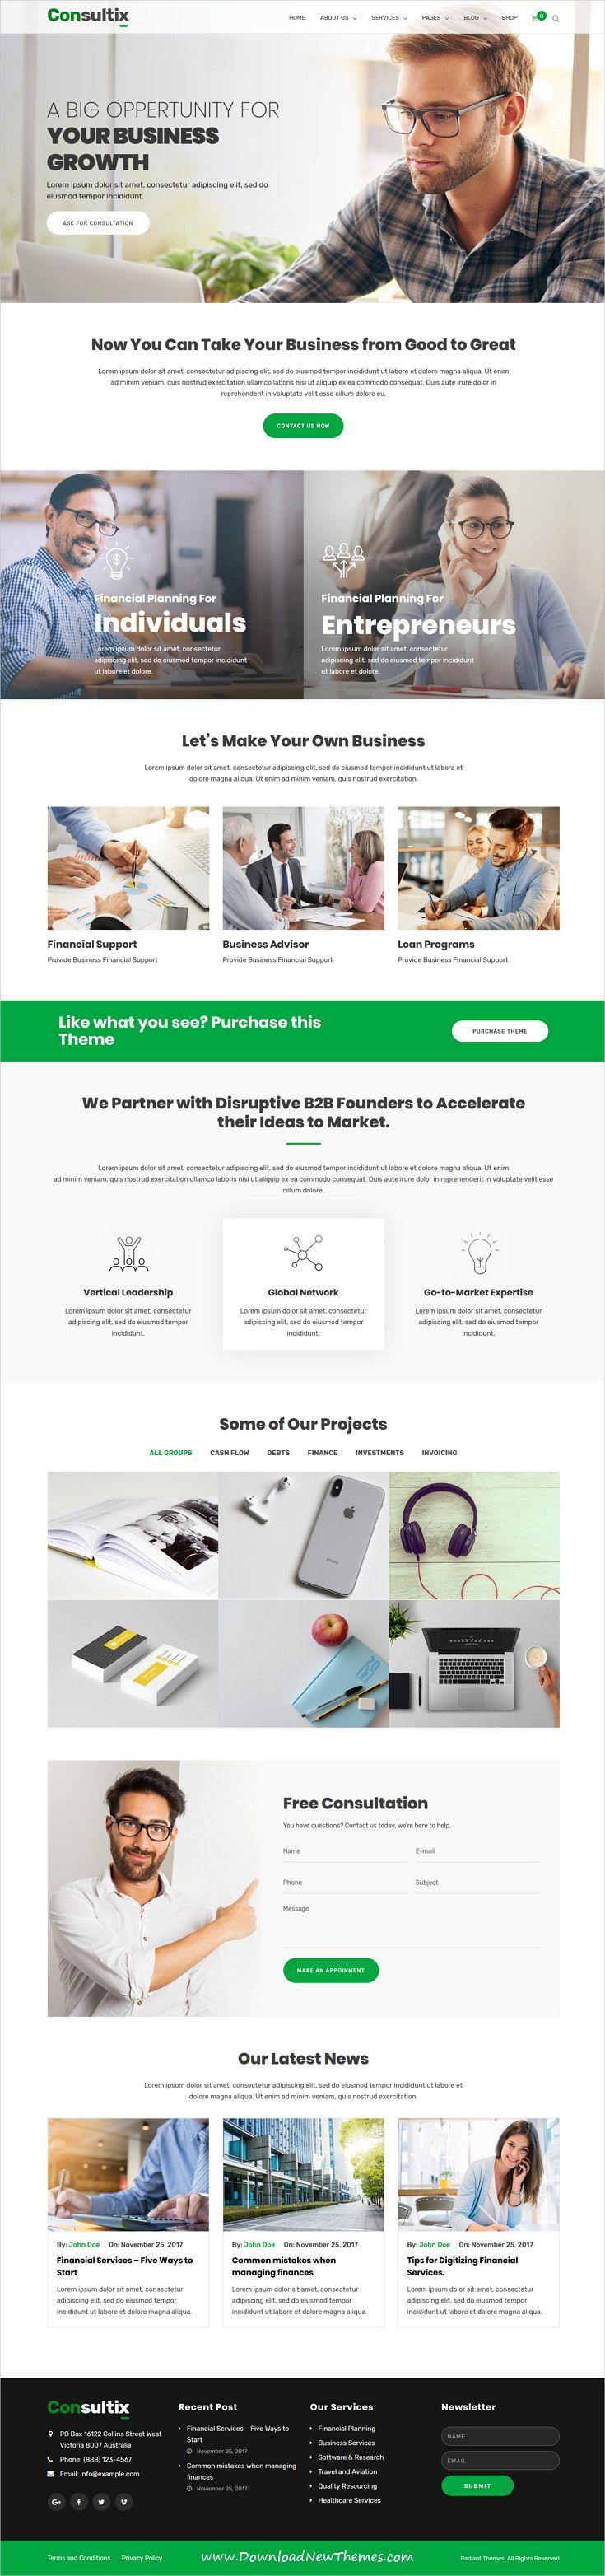 Consultix is clean and modern design responsive WordPress template for professional corporate business and financial services website with 14 #niche homepage layouts to live preview & download click on image or Visit  #webdesign #corporatewebsite